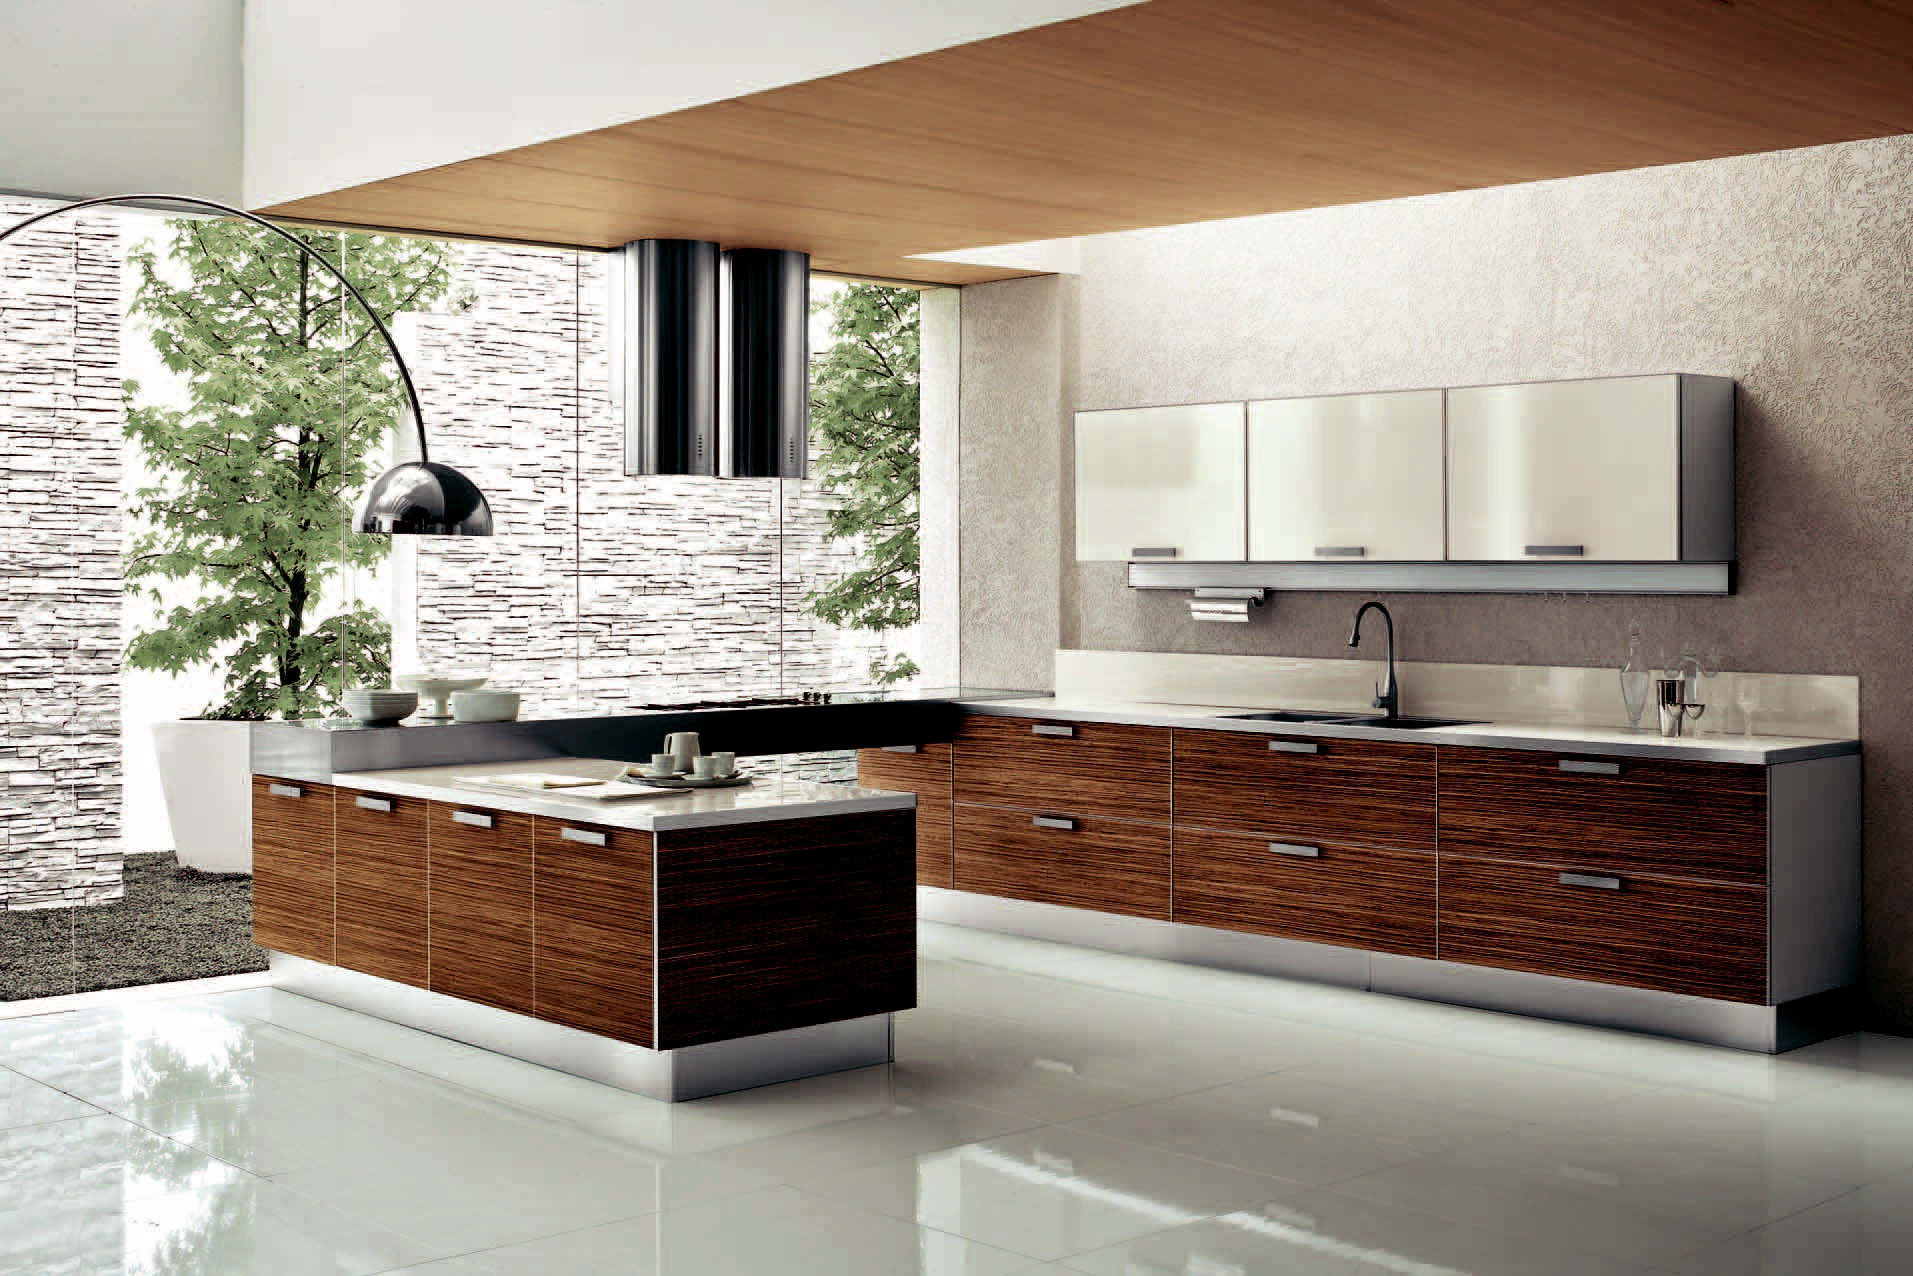 Beyond kitchens kitchen cupboards cape town kitchens for Contemporary kitchen ideas